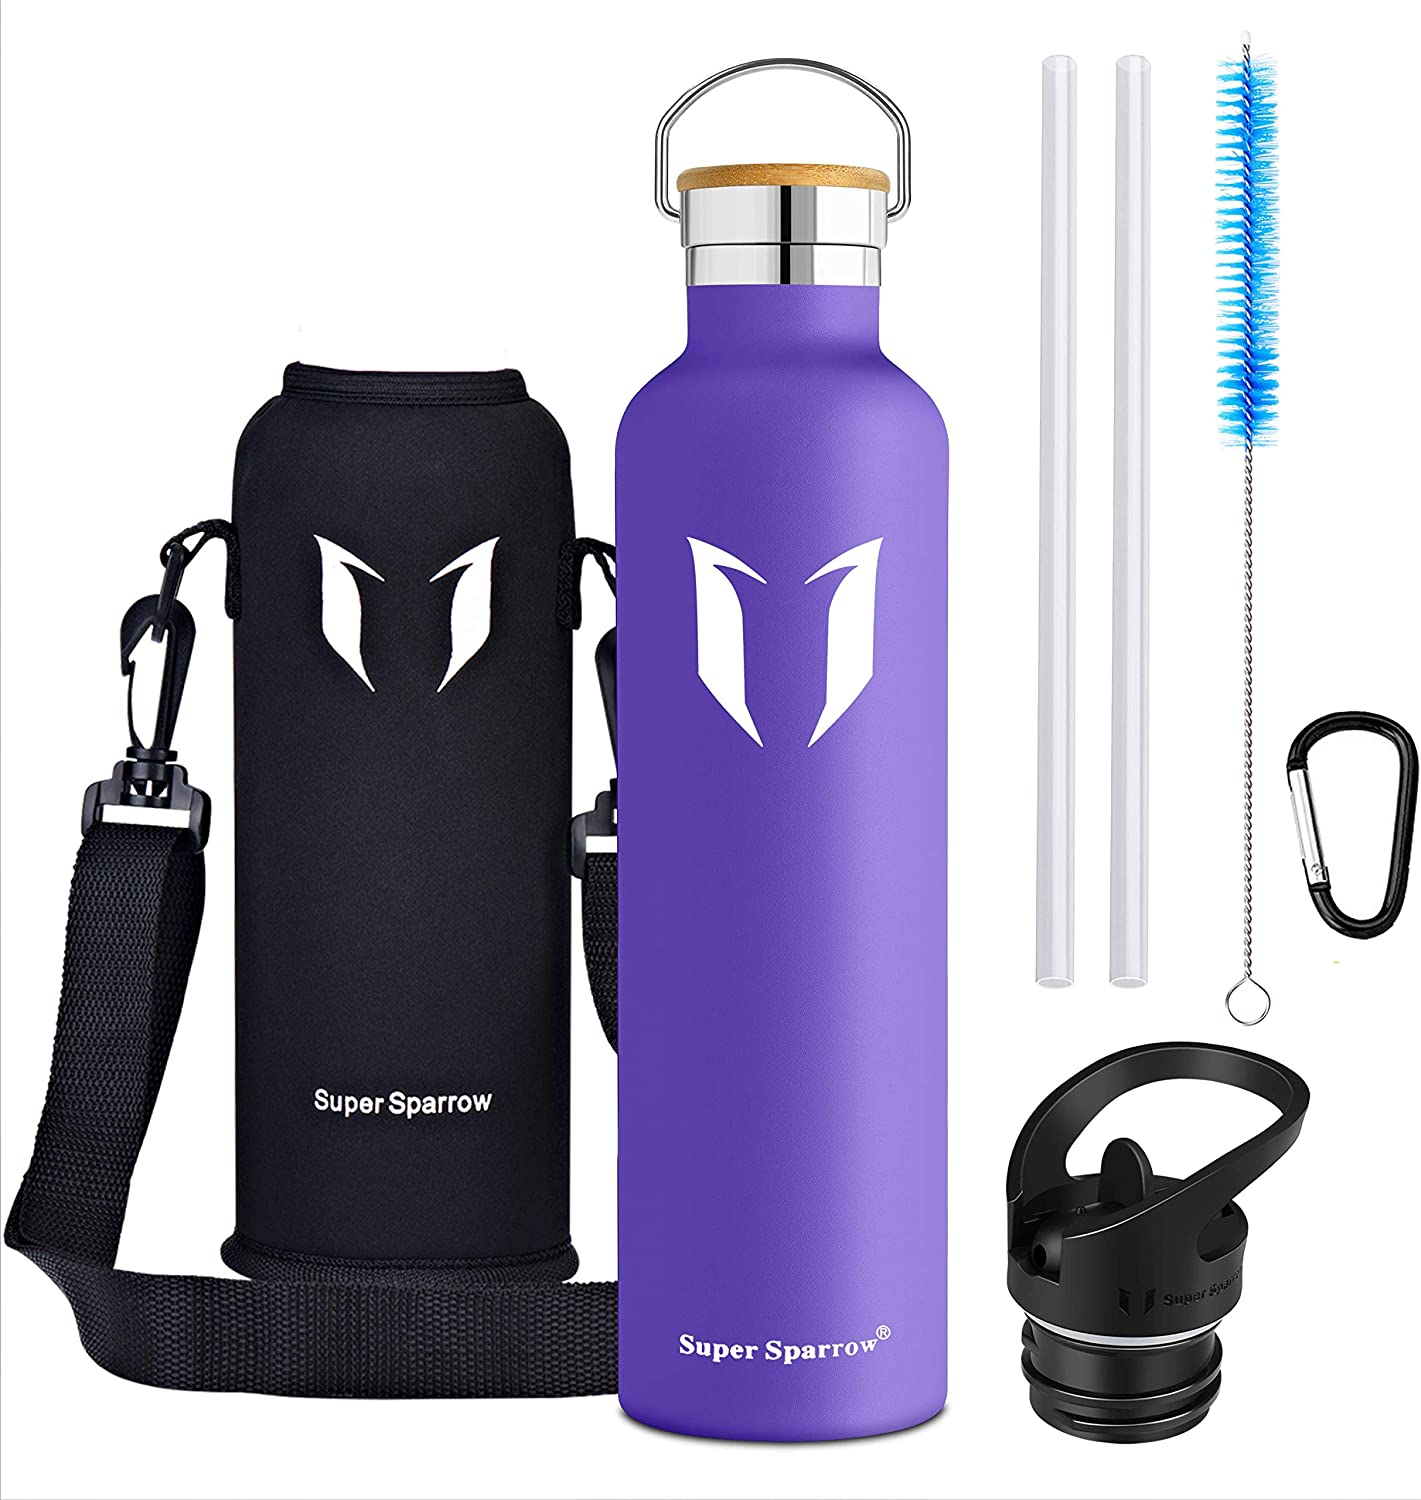 Standard Mouth Leak Proof Sports Bottle with 2 Exchangeable Caps Super Sparrow Water Bottle -1000ml Bottle Pouch Double Wall Vacuum Insulated Stainless Steel Bottle